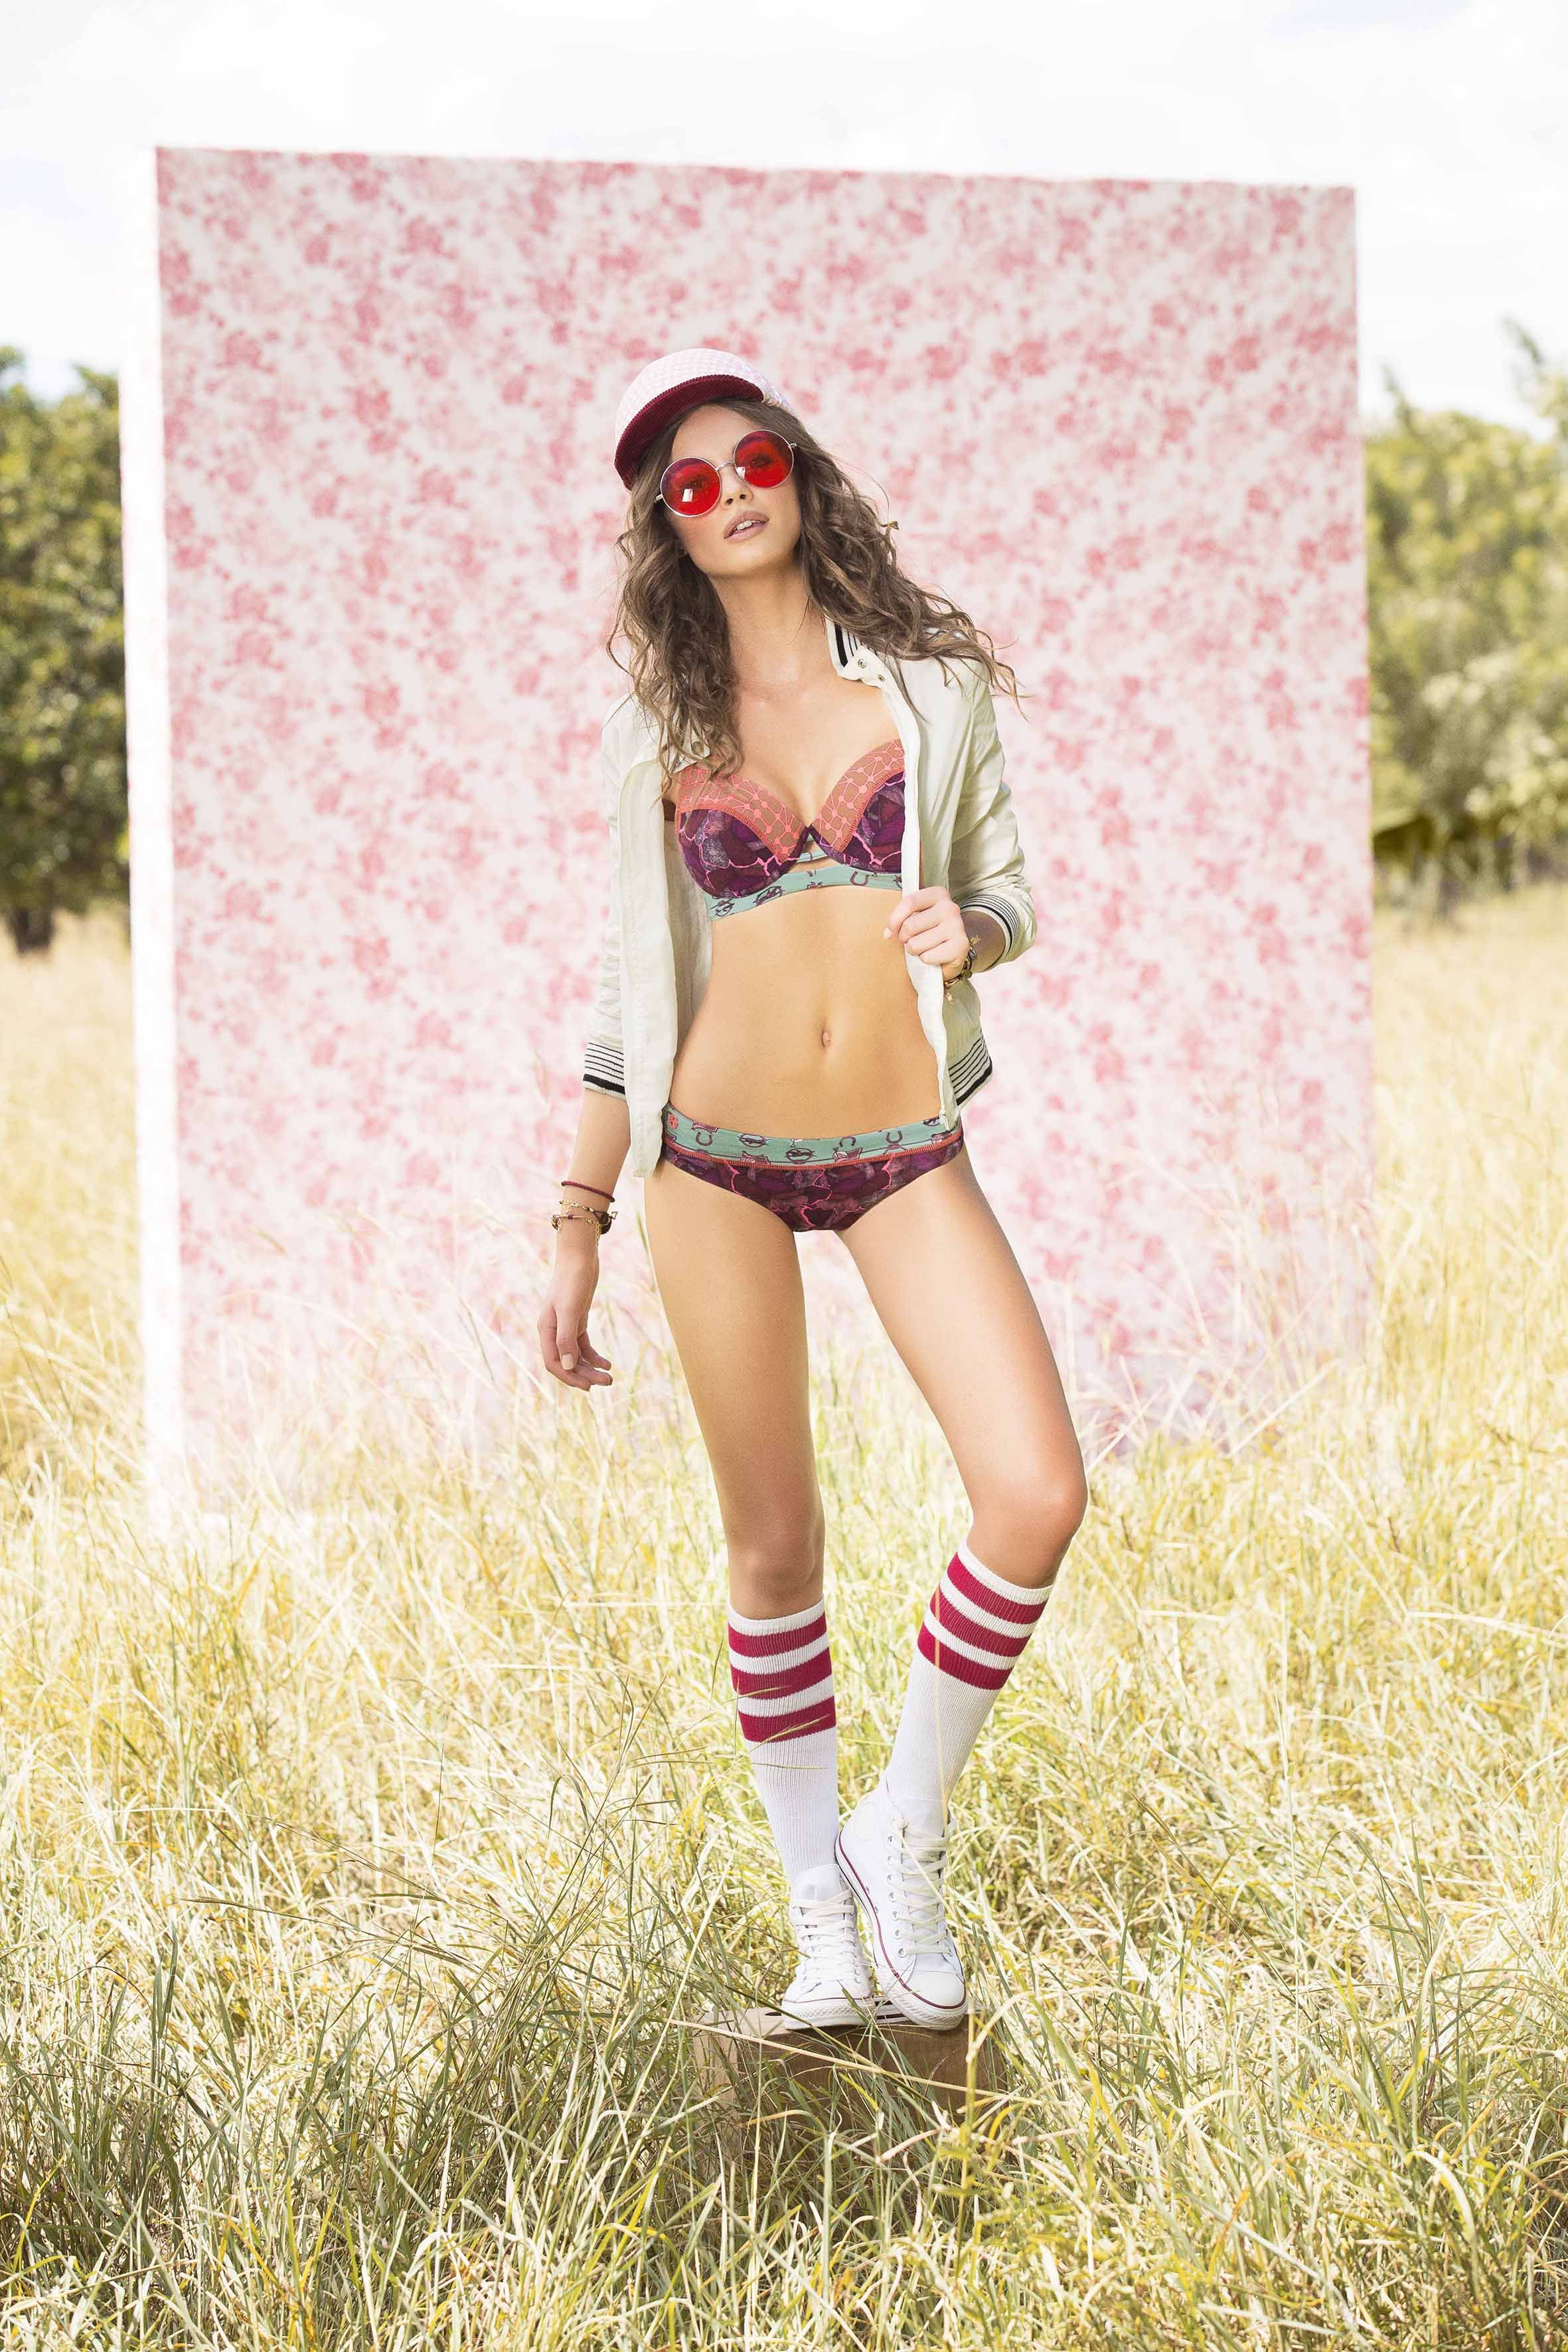 Discussion on this topic: Maaji Royal Riders Swimwear 2015 Collection, maaji-royal-riders-swimwear-2015-collection/